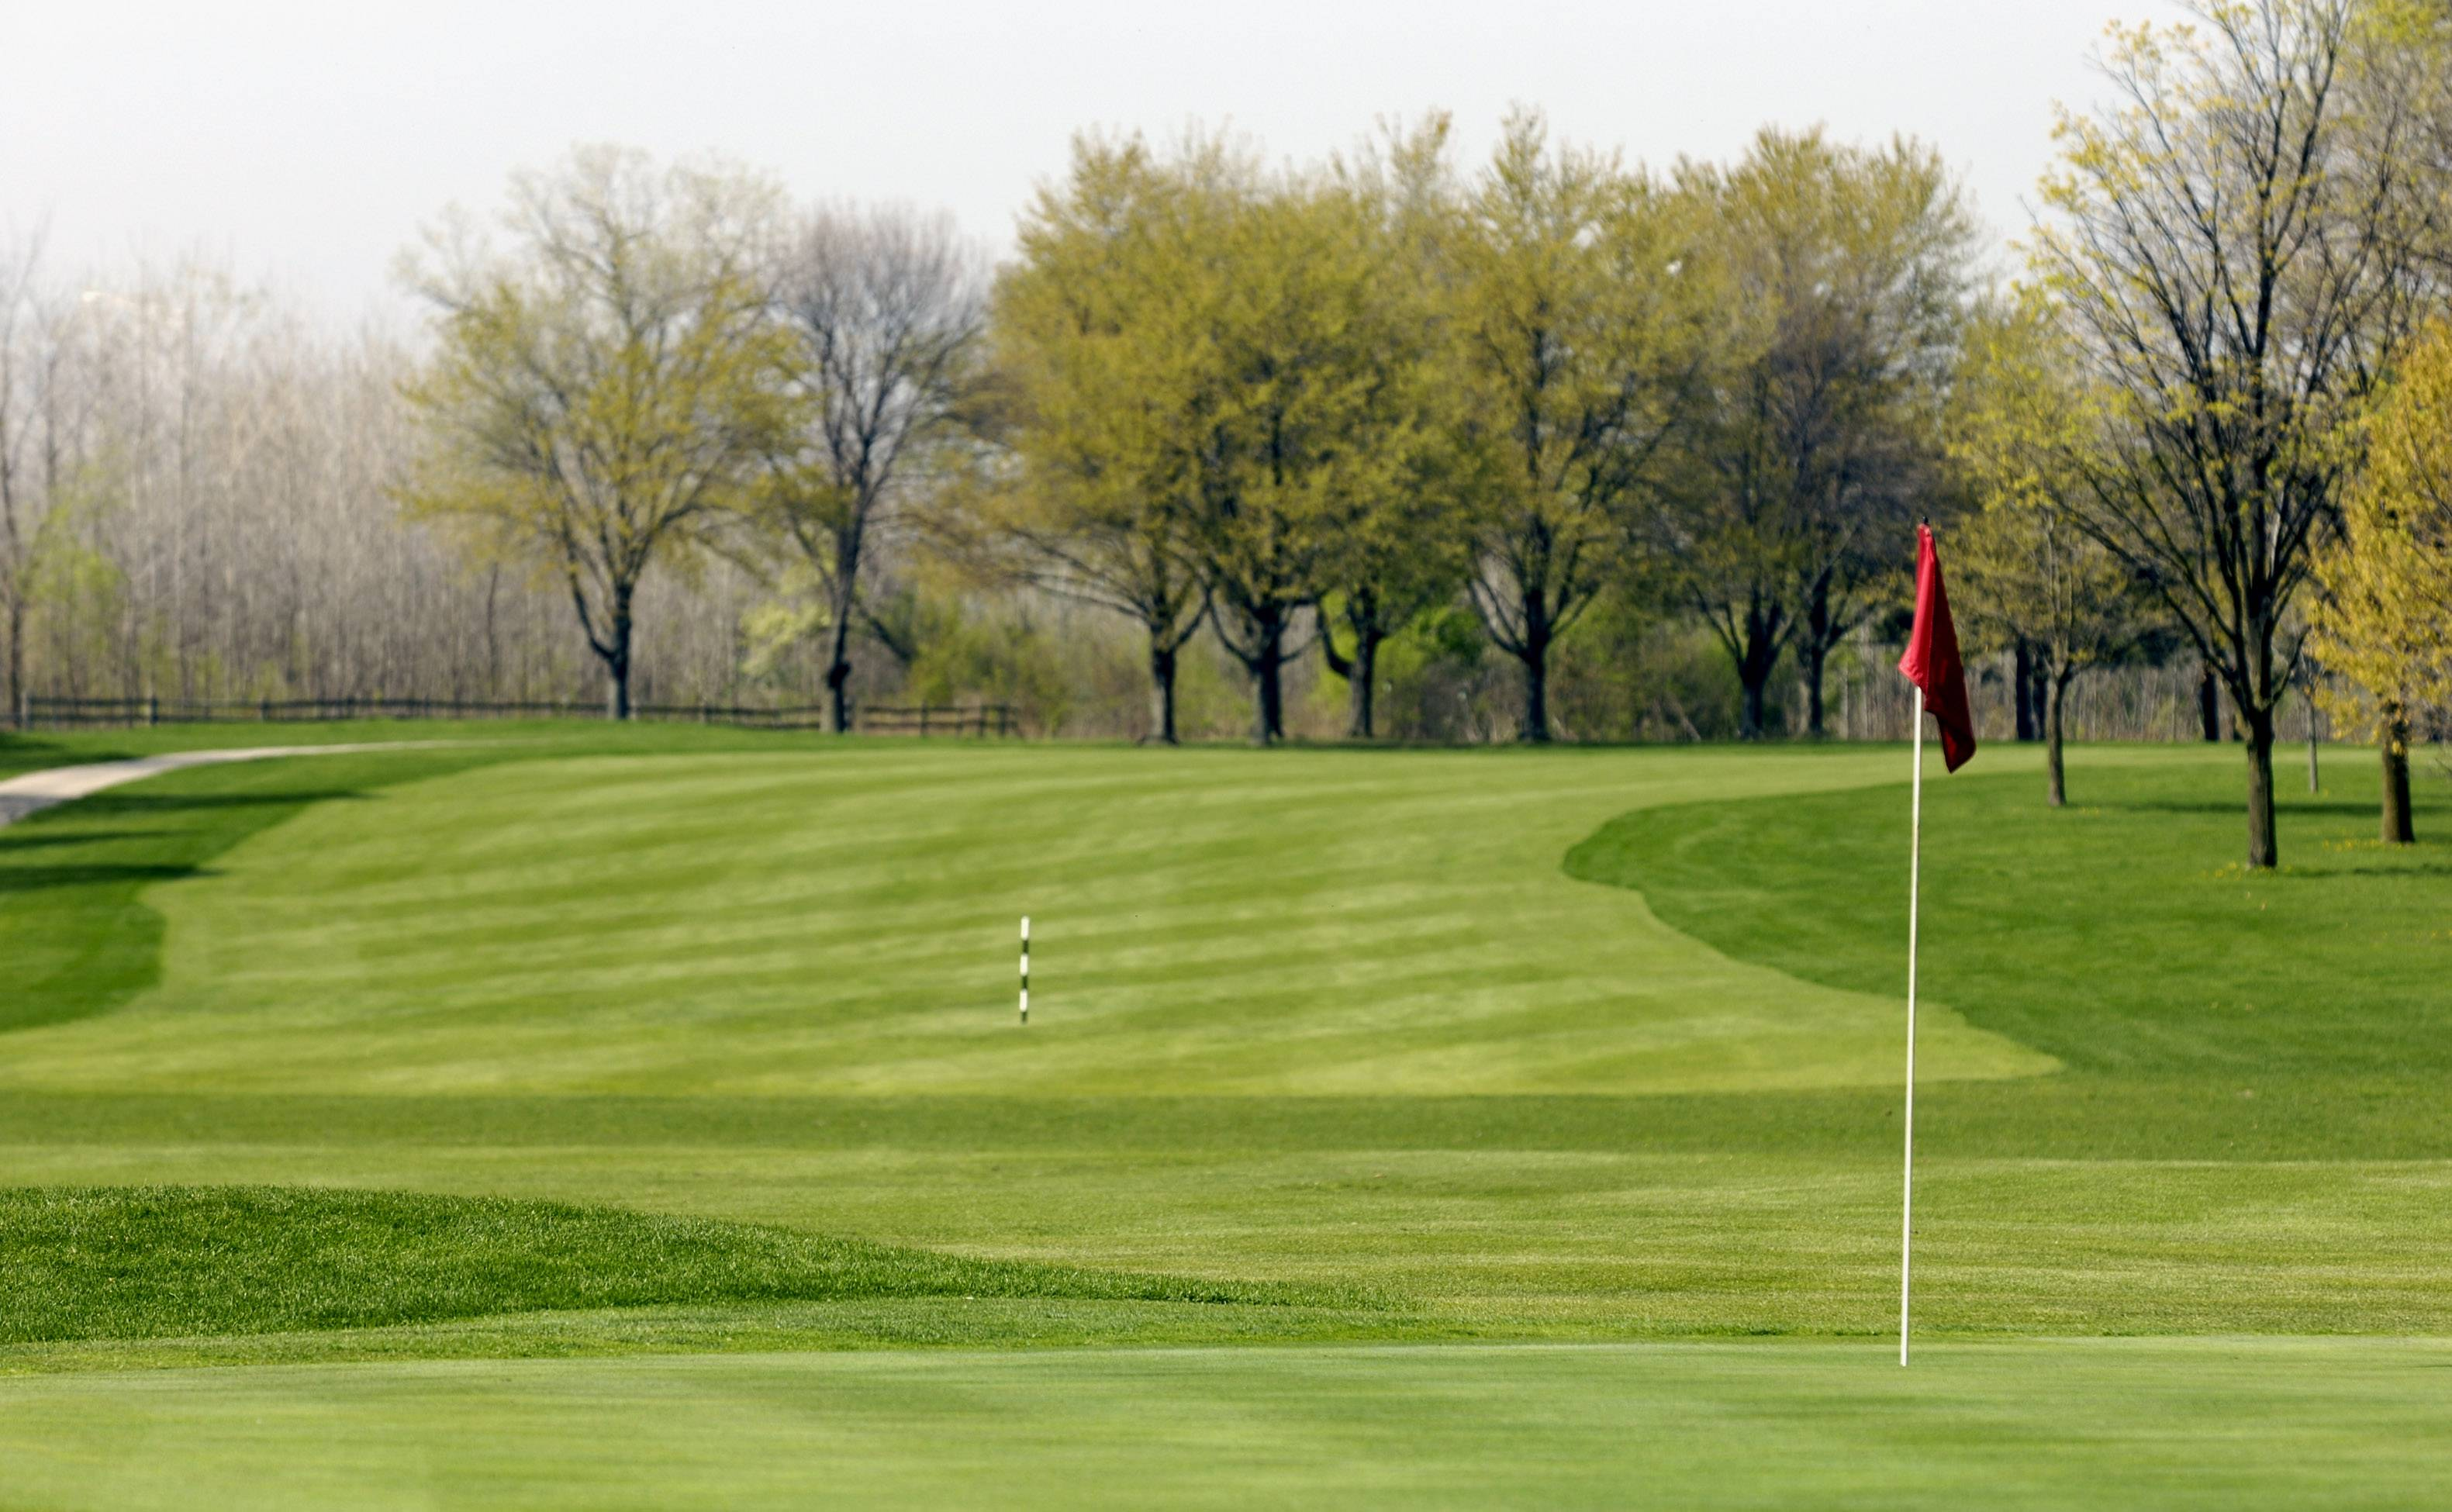 DuPage County Forest Preserve commissioners are considering whether to move ahead with a roughly $16 million improvement project at Oak Meadows Golf Preserve in Addison.